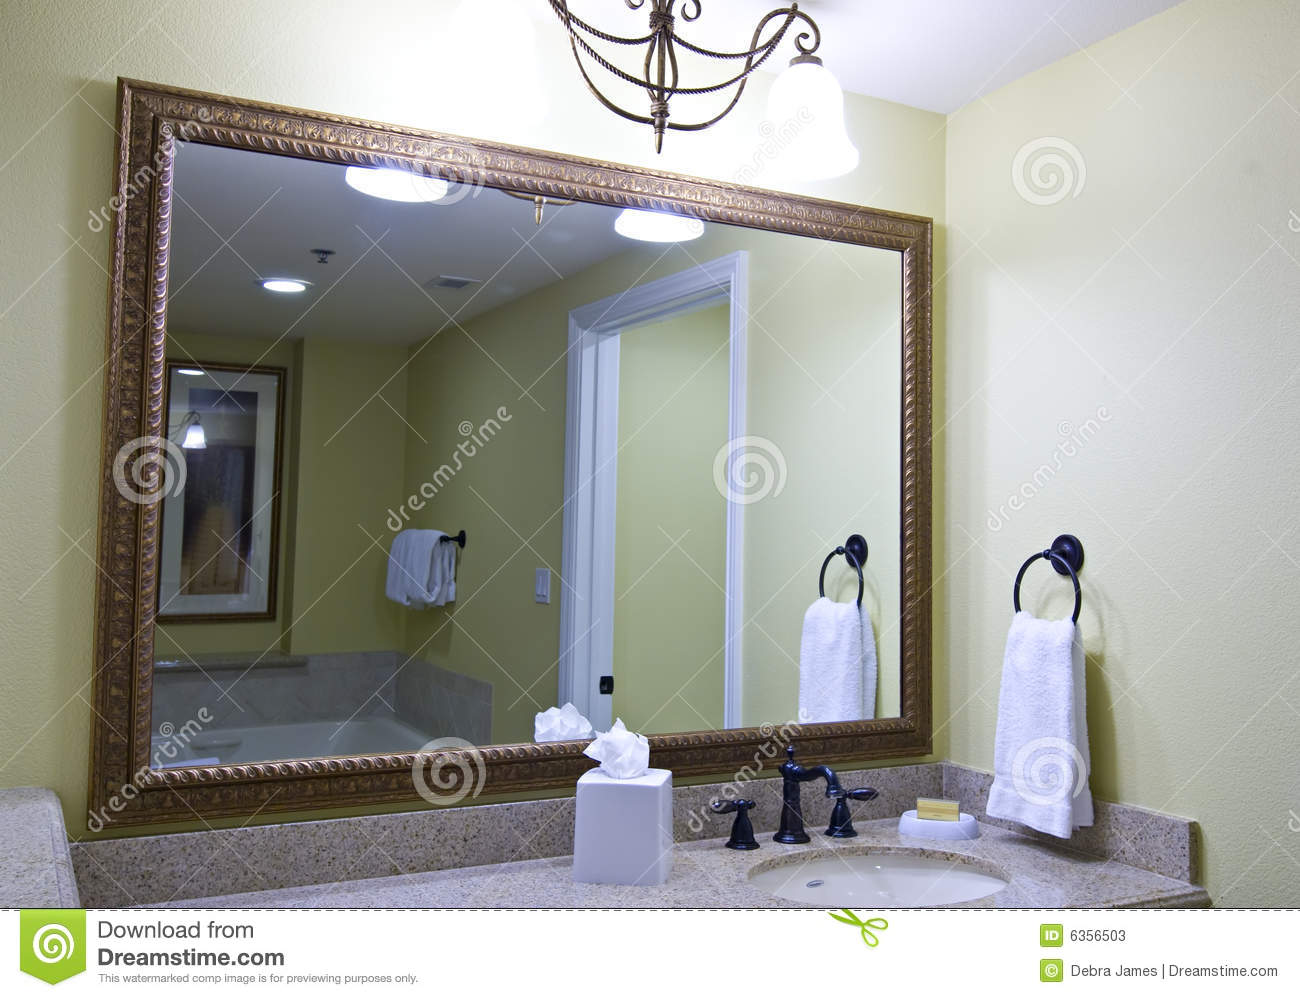 Grand miroir de salle de bains photos stock image 6356503 for Grand miroir